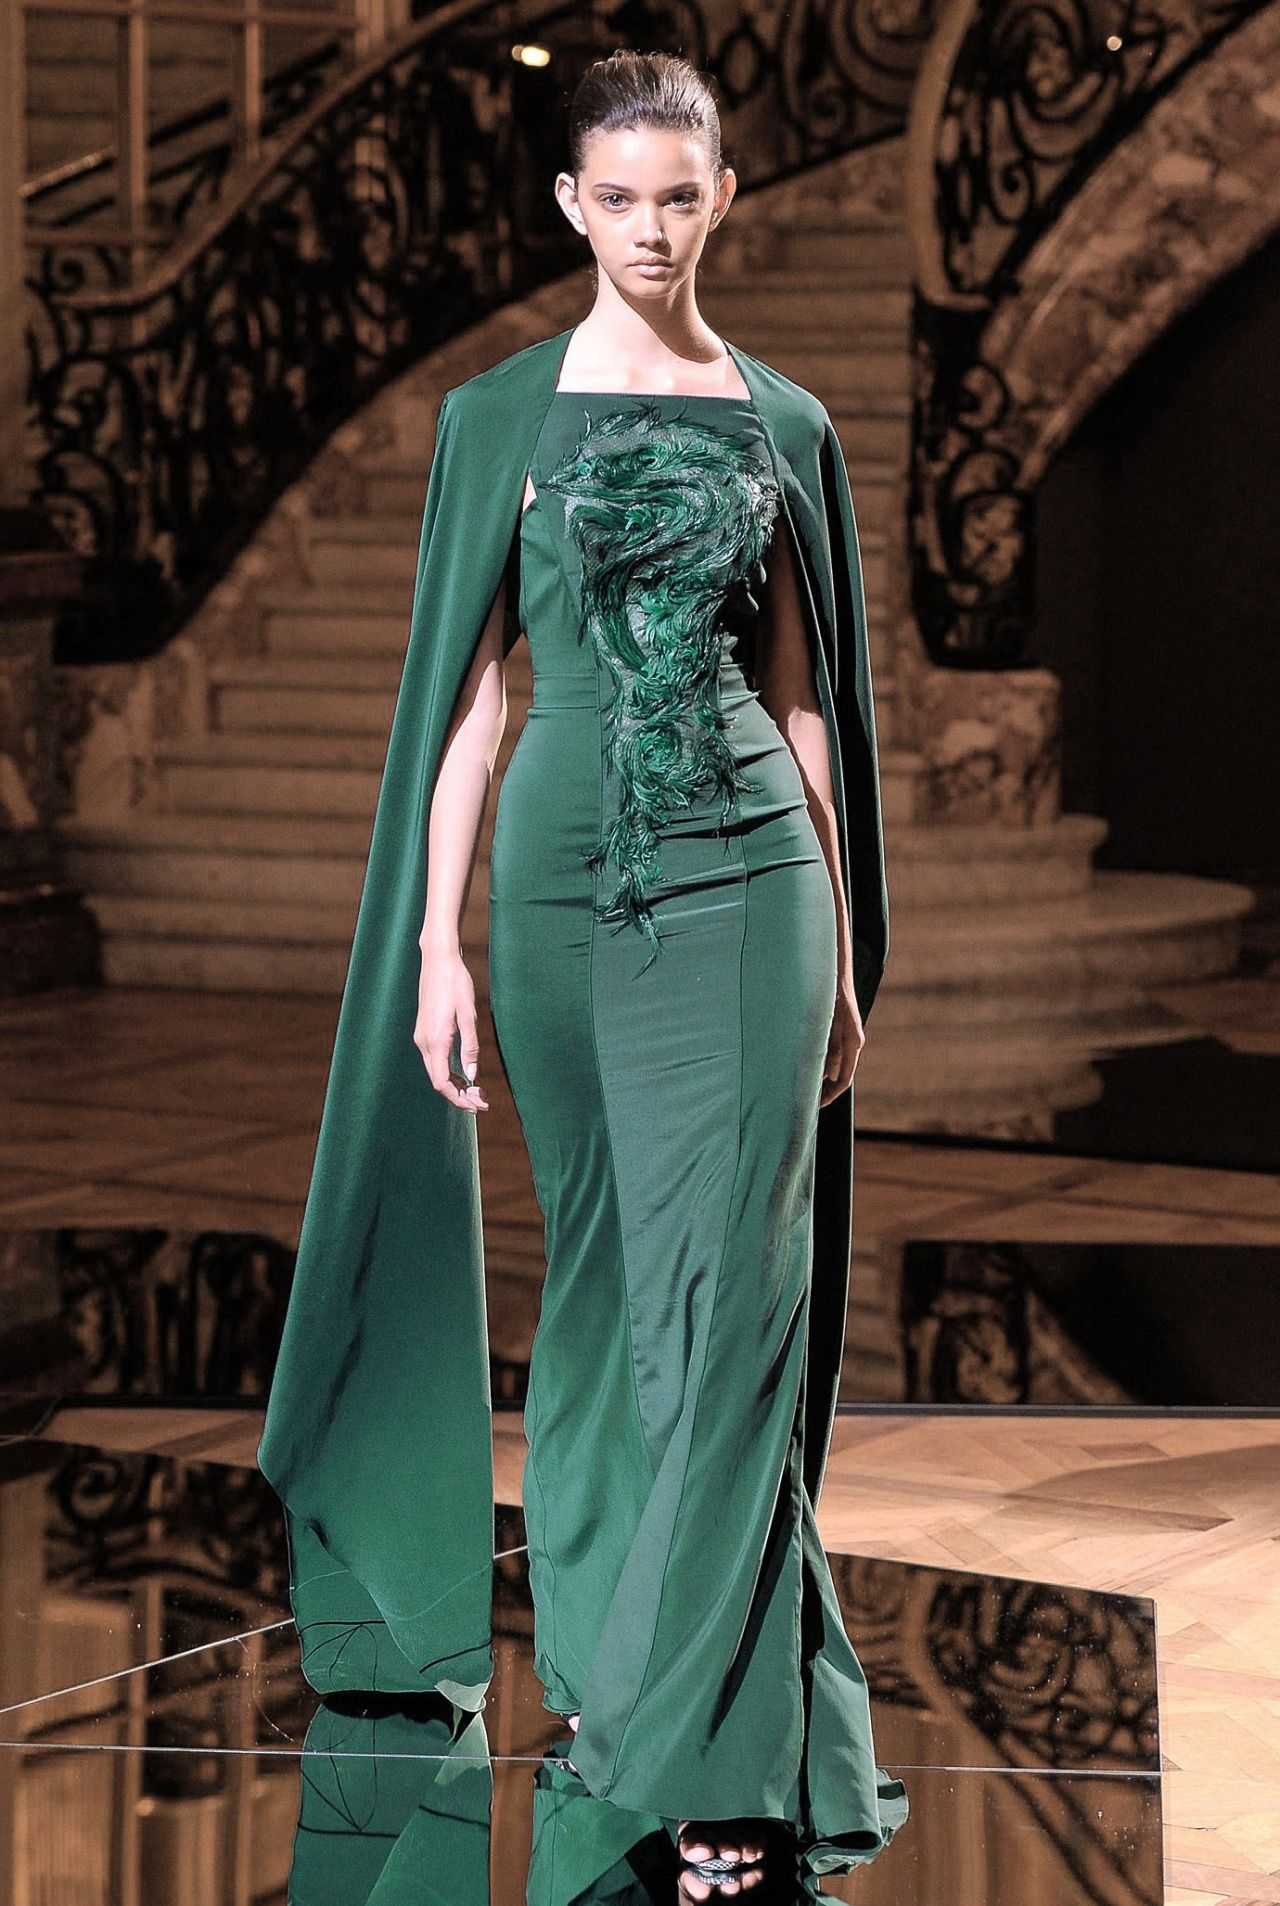 What Queen Alicent would have worn to the opening feast of